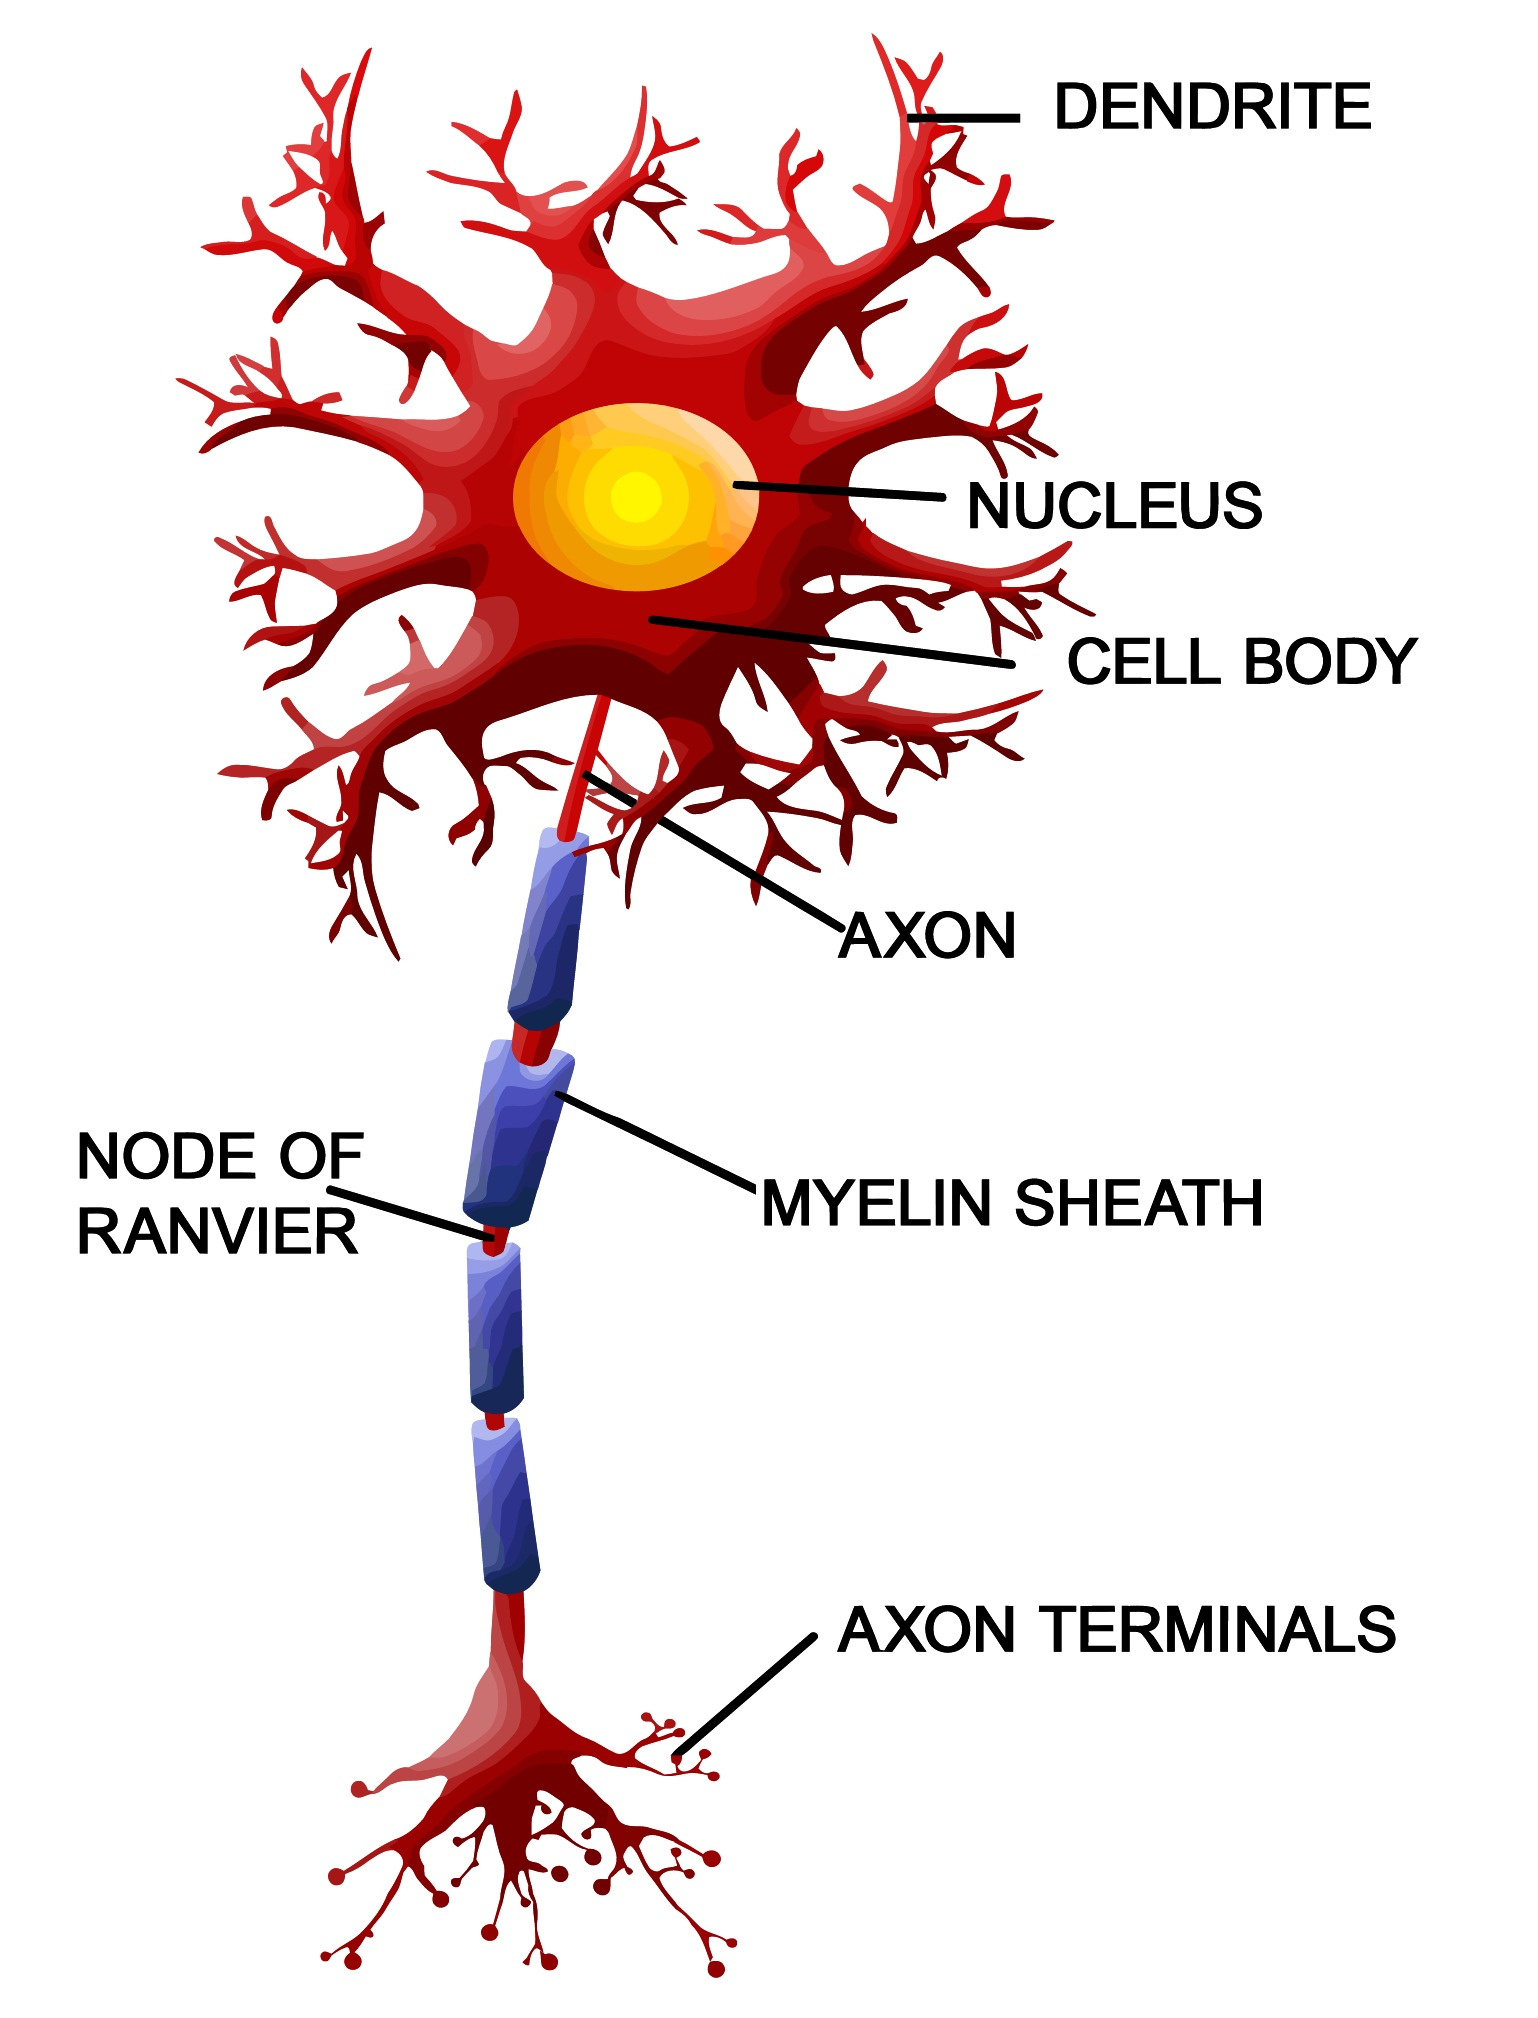 Pin motor neuron on pinterest for What is a motor neuron